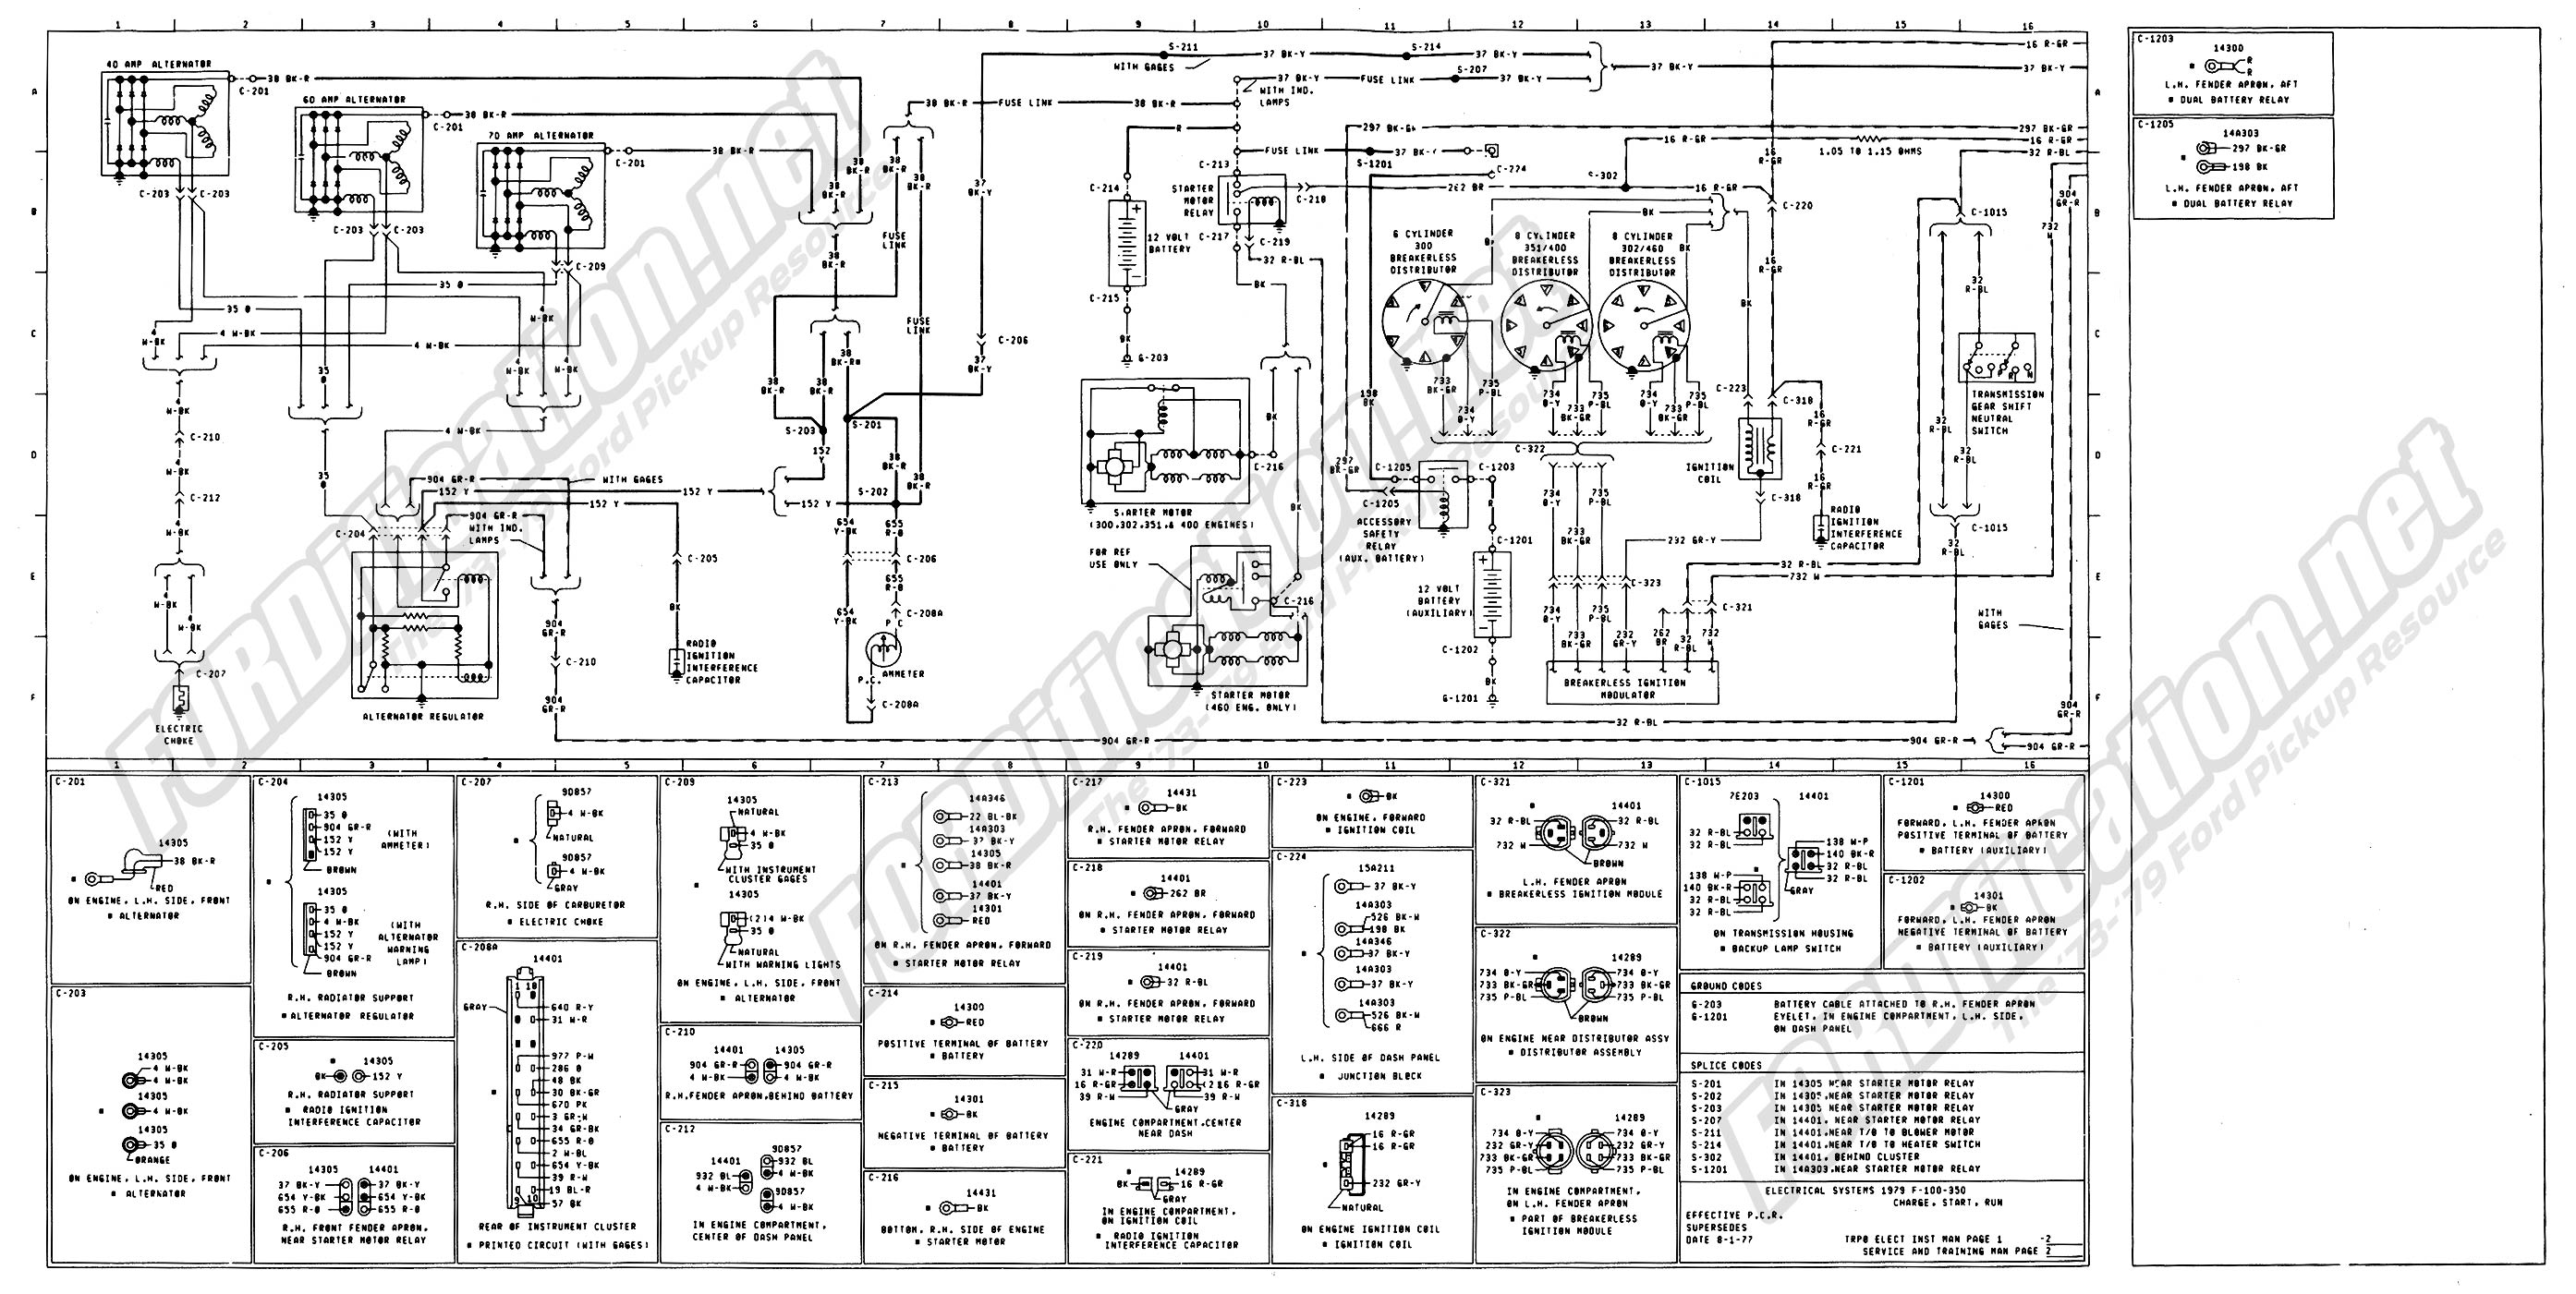 wiring_79master_2of9 1967 ford wiring diagram 1967 chevelle wiring diagram pdf \u2022 free 2007 ford 500 wiring diagram at fashall.co